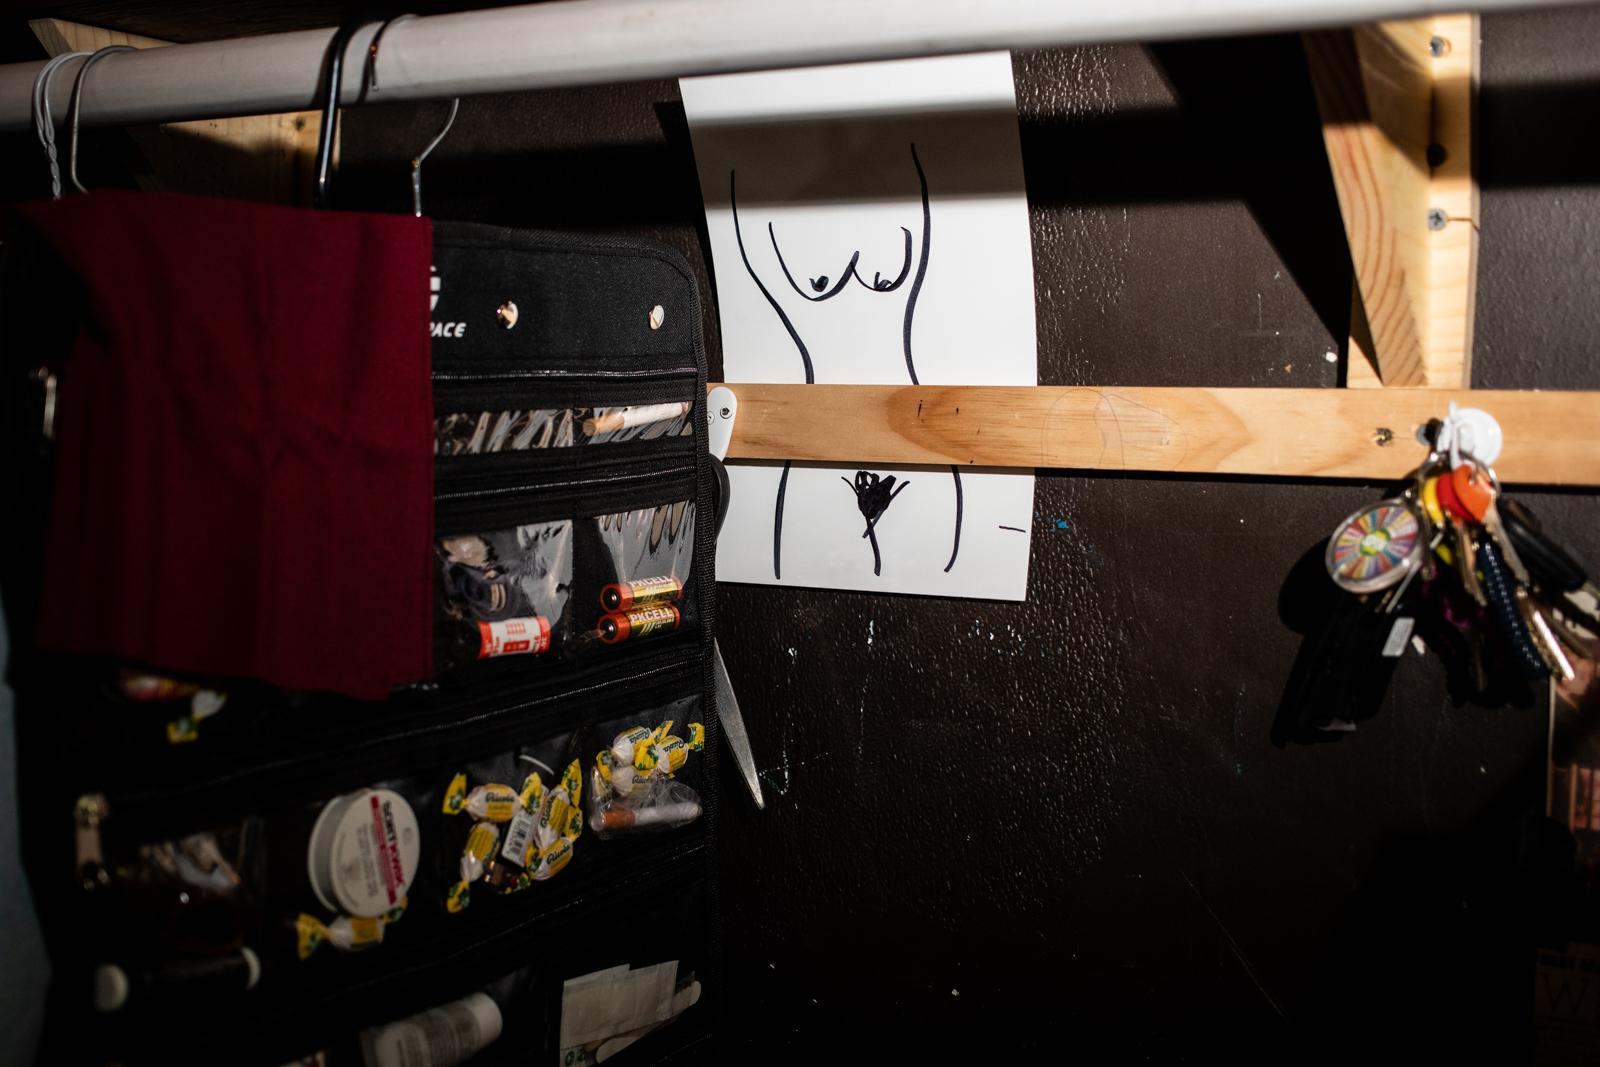 A drawing and some magic props inside a dressing room at the Black Rabbit Rose, a magic club in Hollywood.